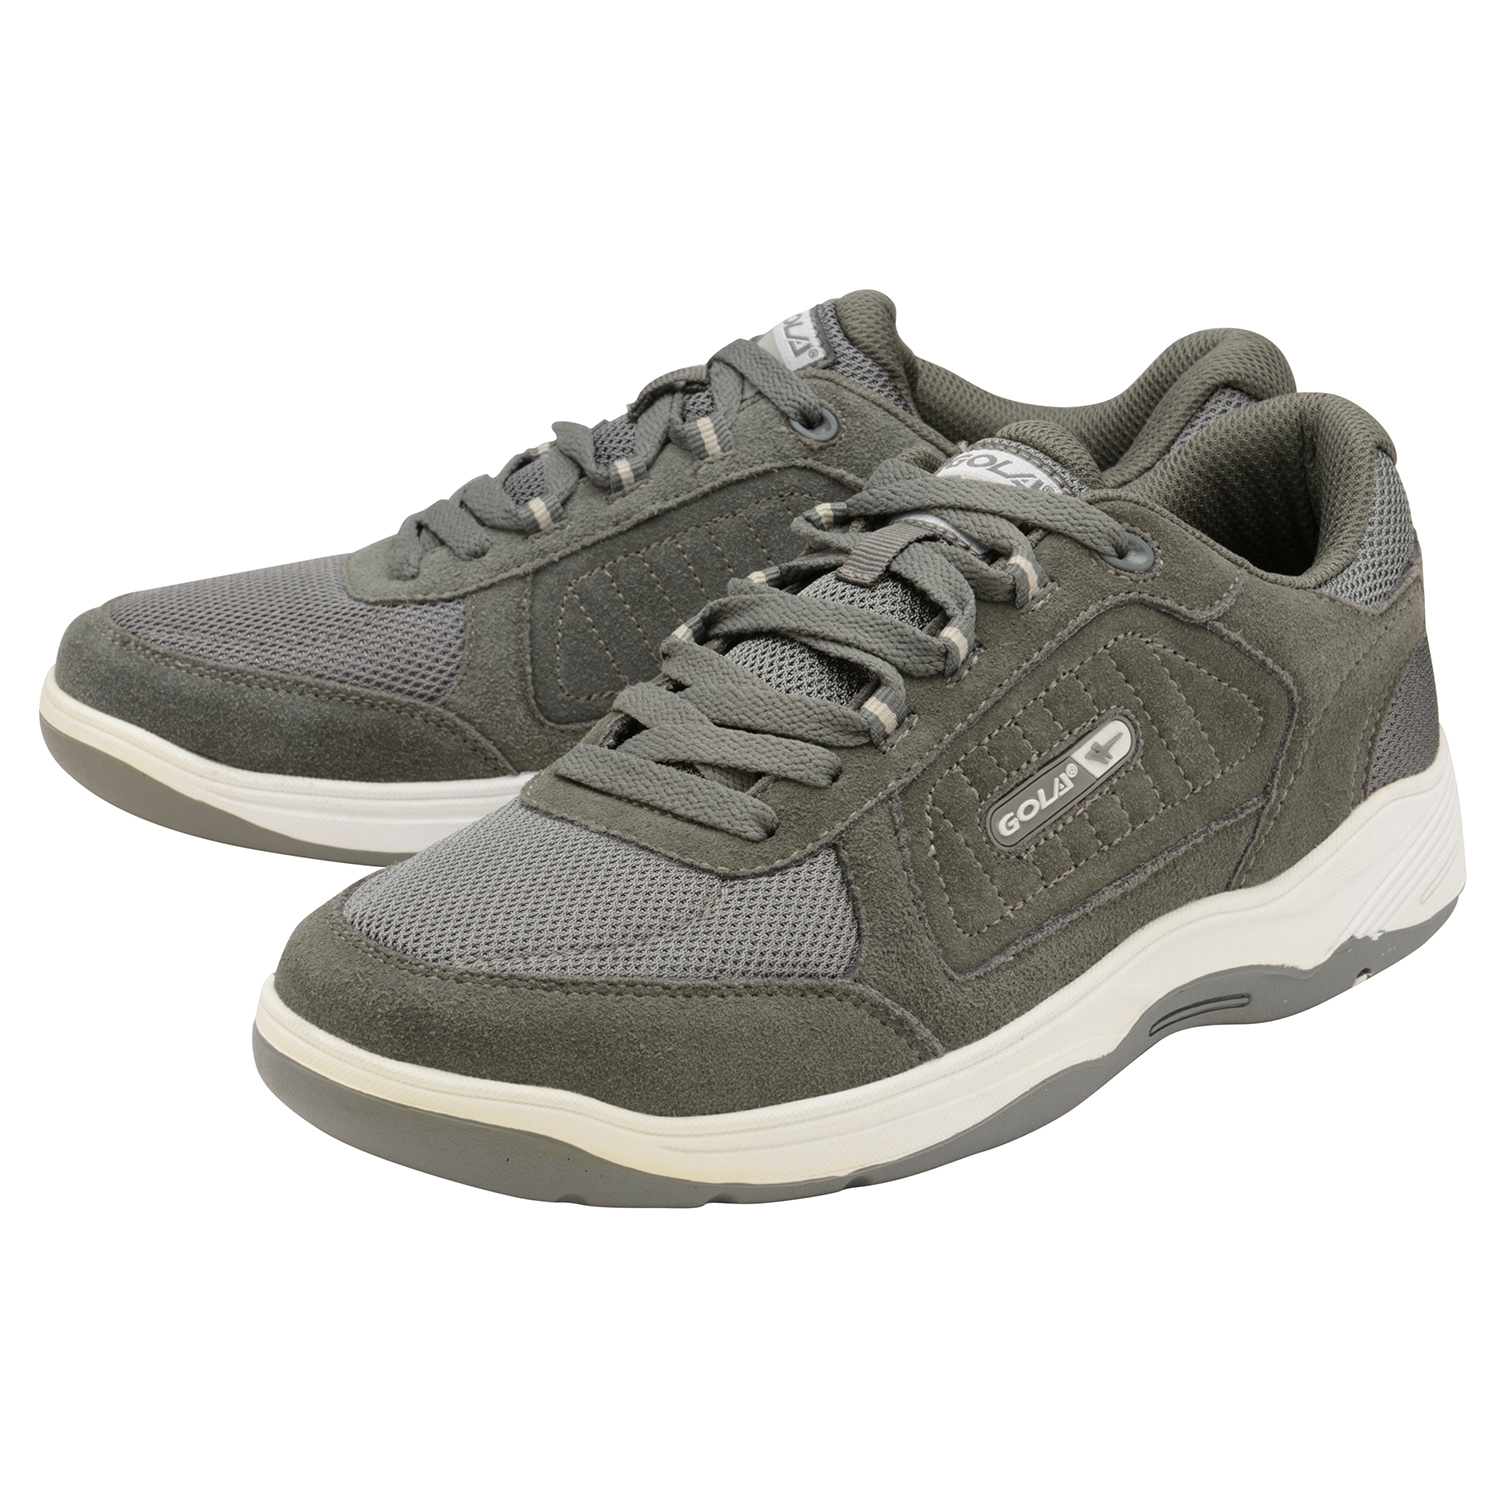 thumbnail 8 - Mens Gola Belmont Wide EE Fit Suede Sports Shoes Lace Up Non-Mark Sole Trainers